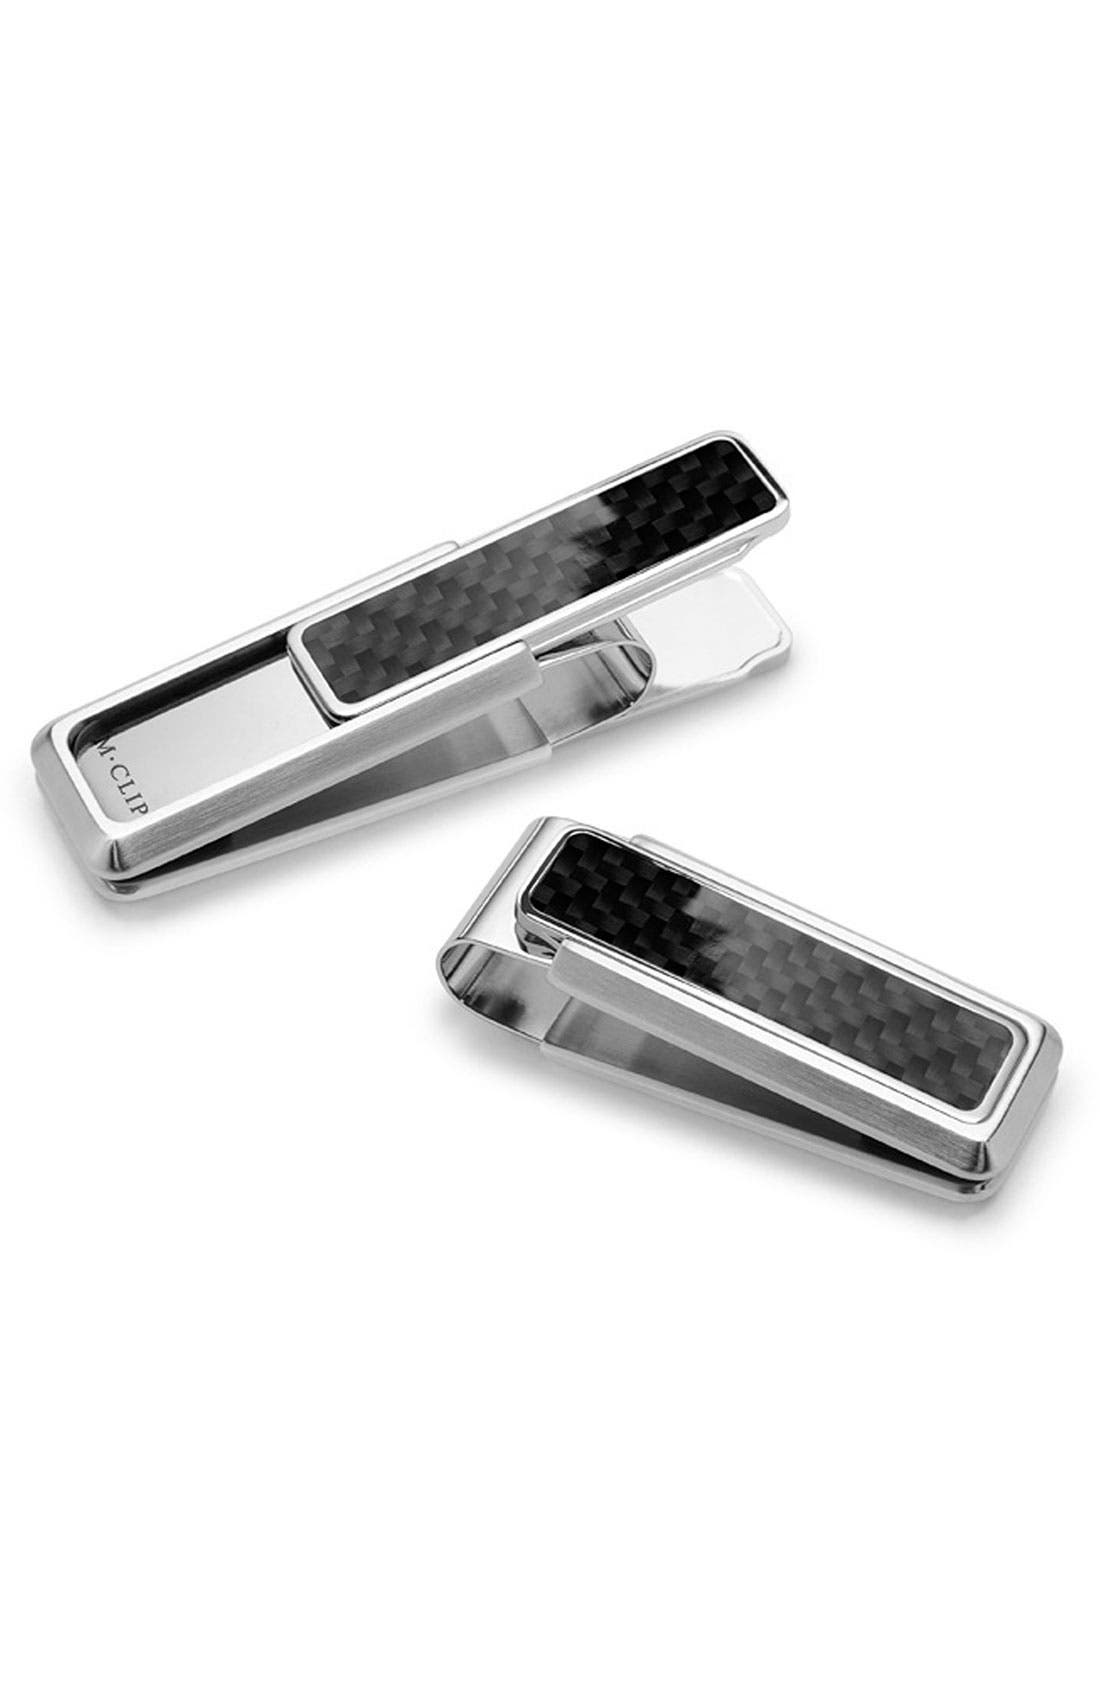 'Discovery Line' Stainless Steel Money Clip,                             Main thumbnail 1, color,                             Black